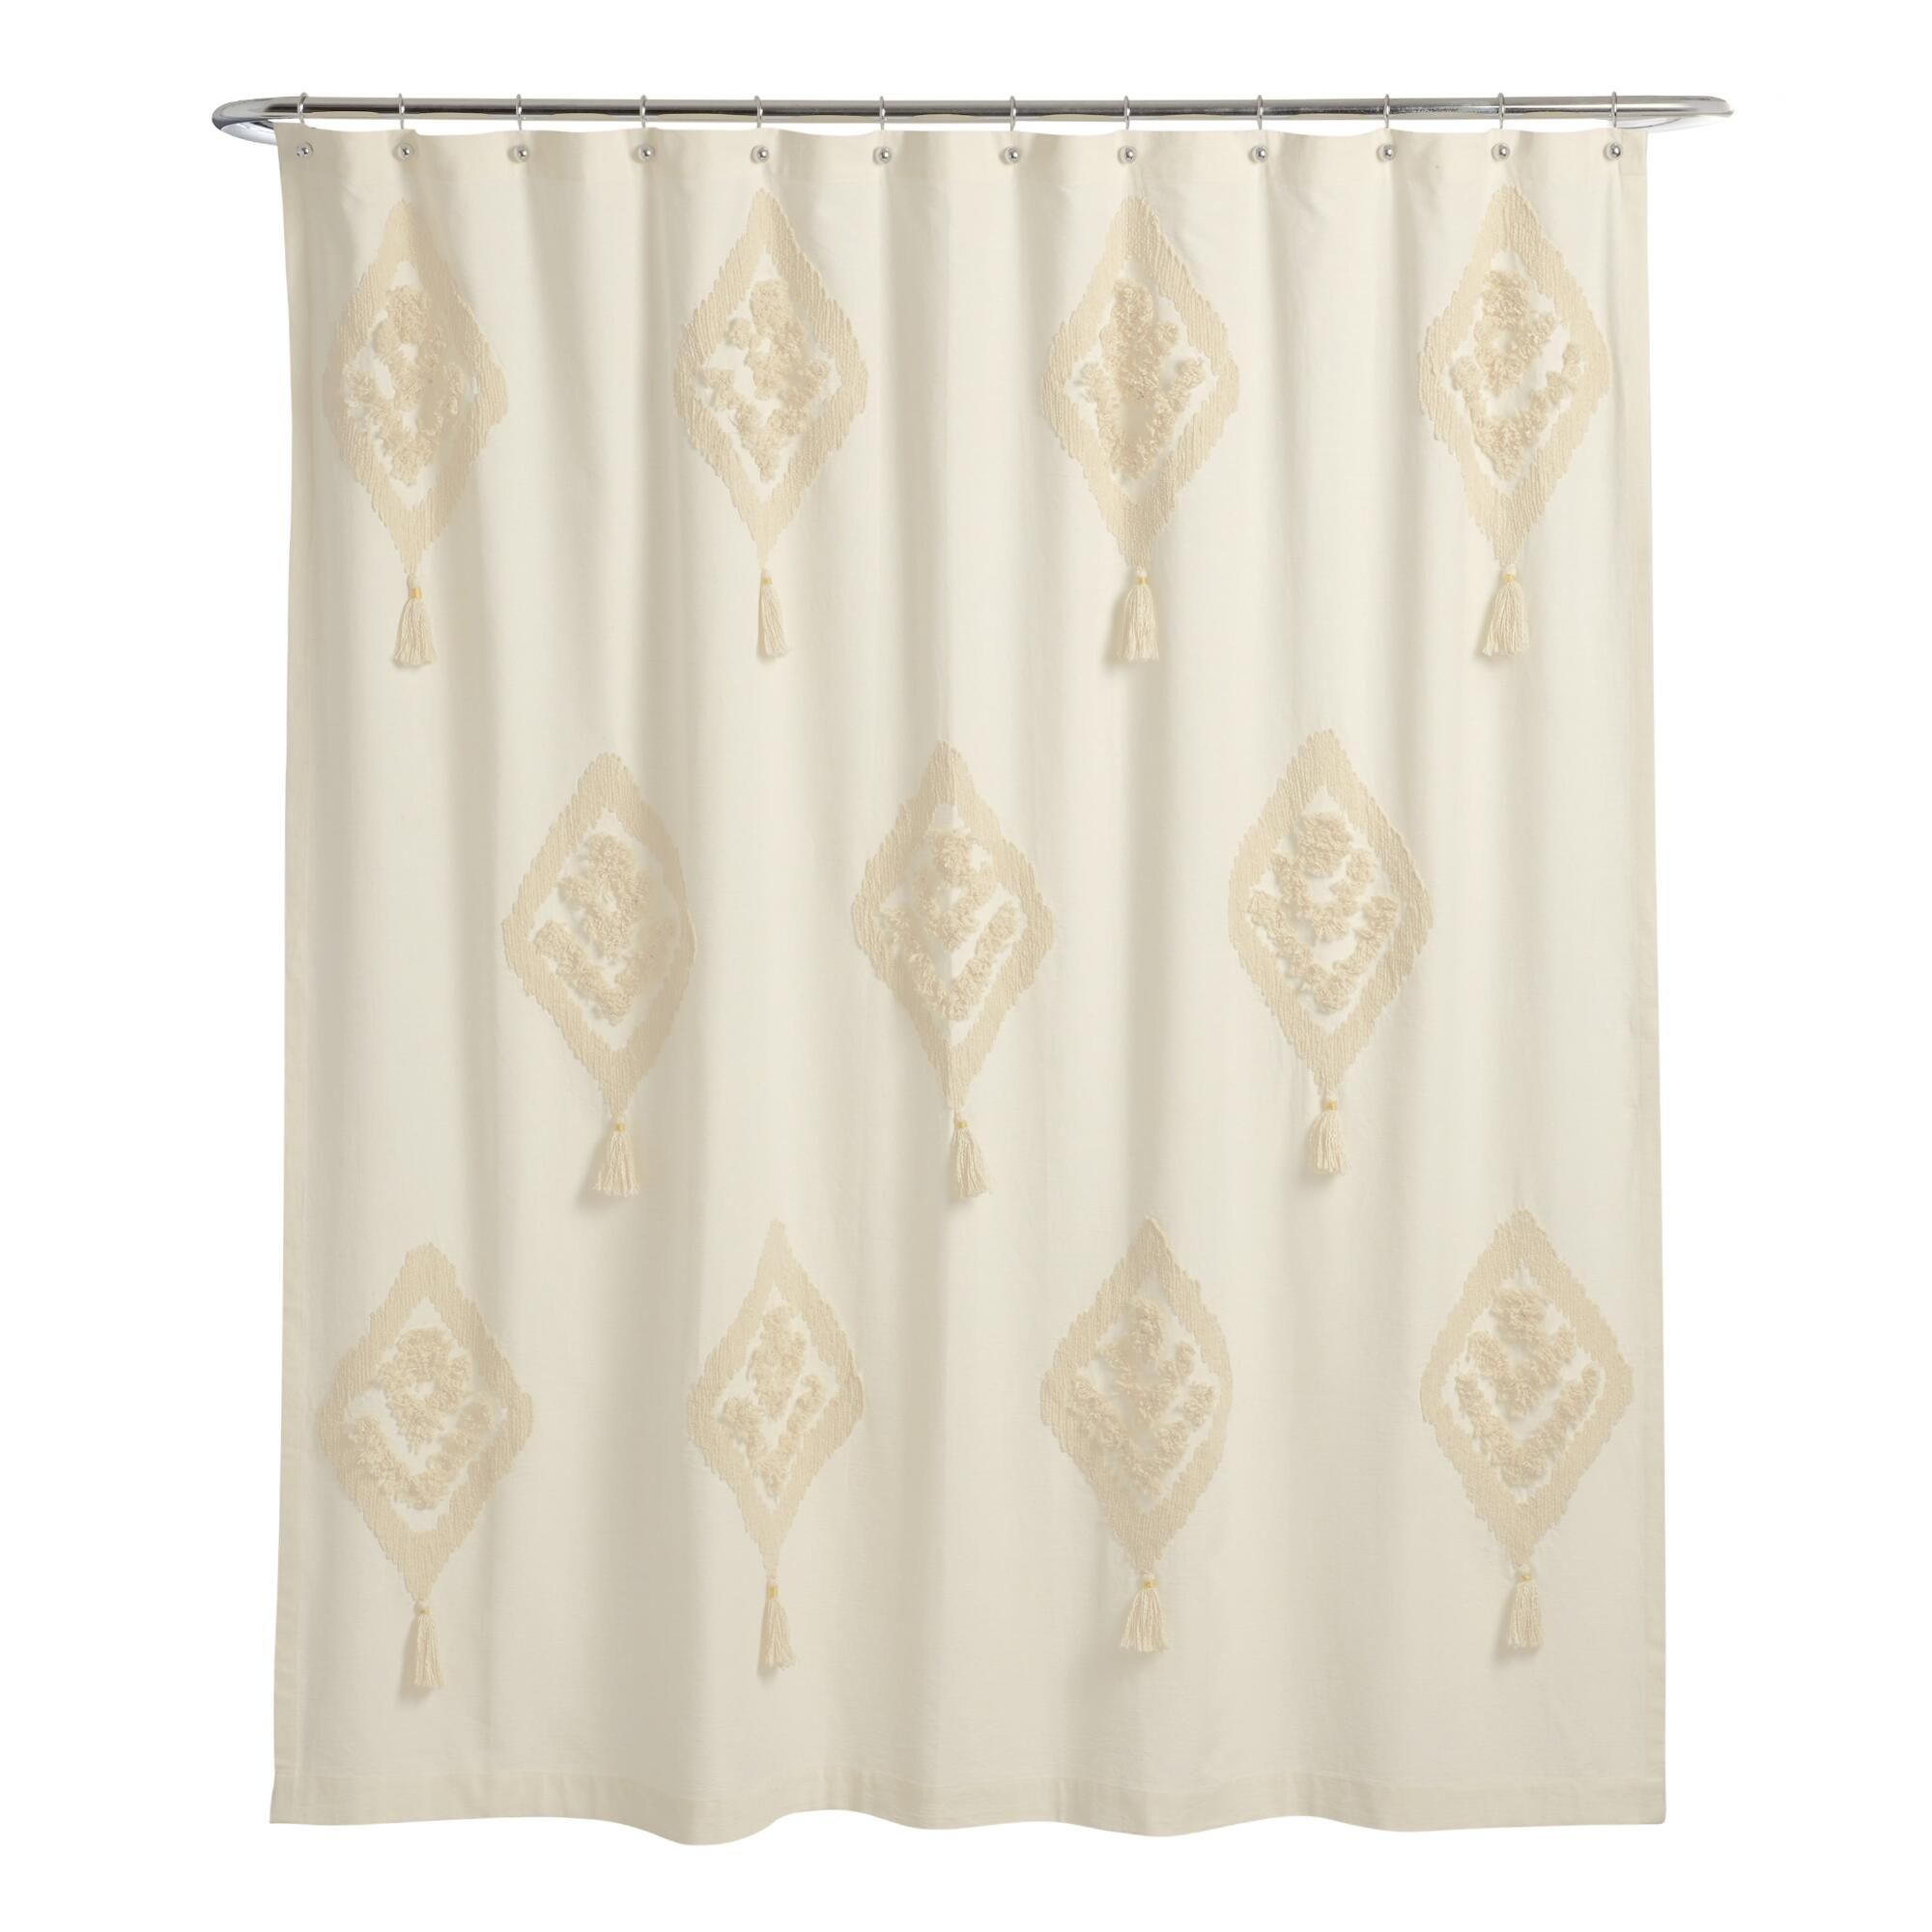 Ivory Tufted Diamond Tassel Yana Shower Curtain By World Market In 2020 World Market Shower Curtain Curtains World Market Curtains